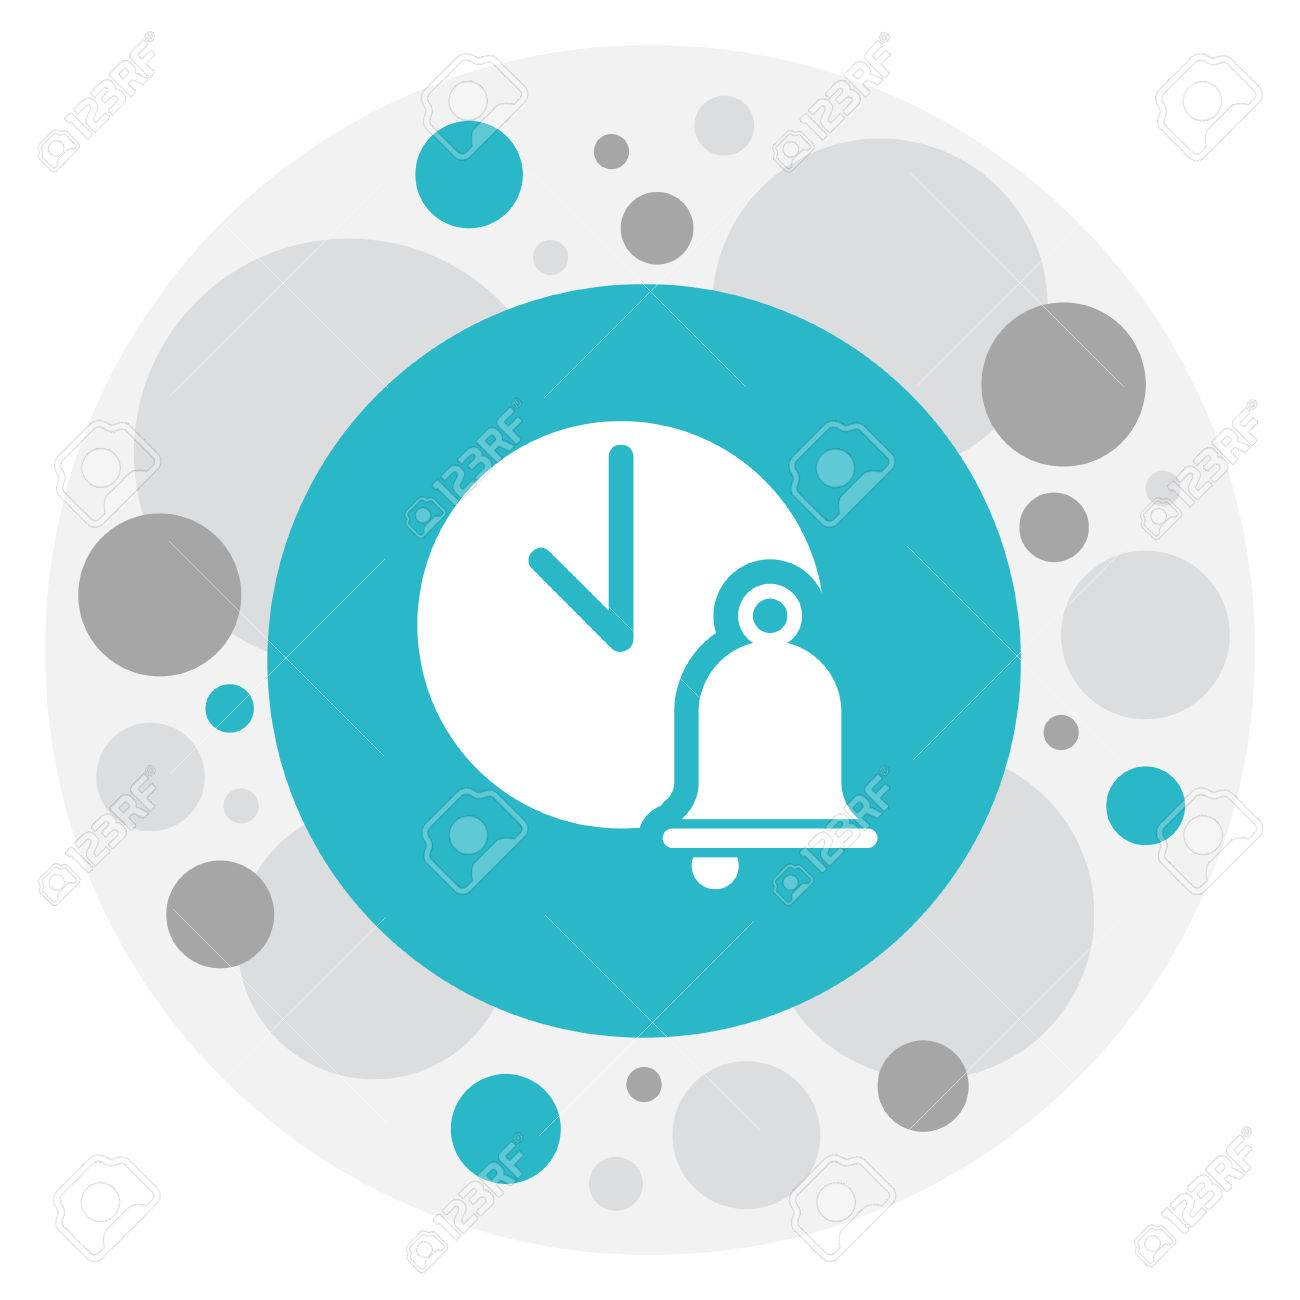 Vector Illustration Of Science Symbol On Ring Buzzer Icon Royalty ...